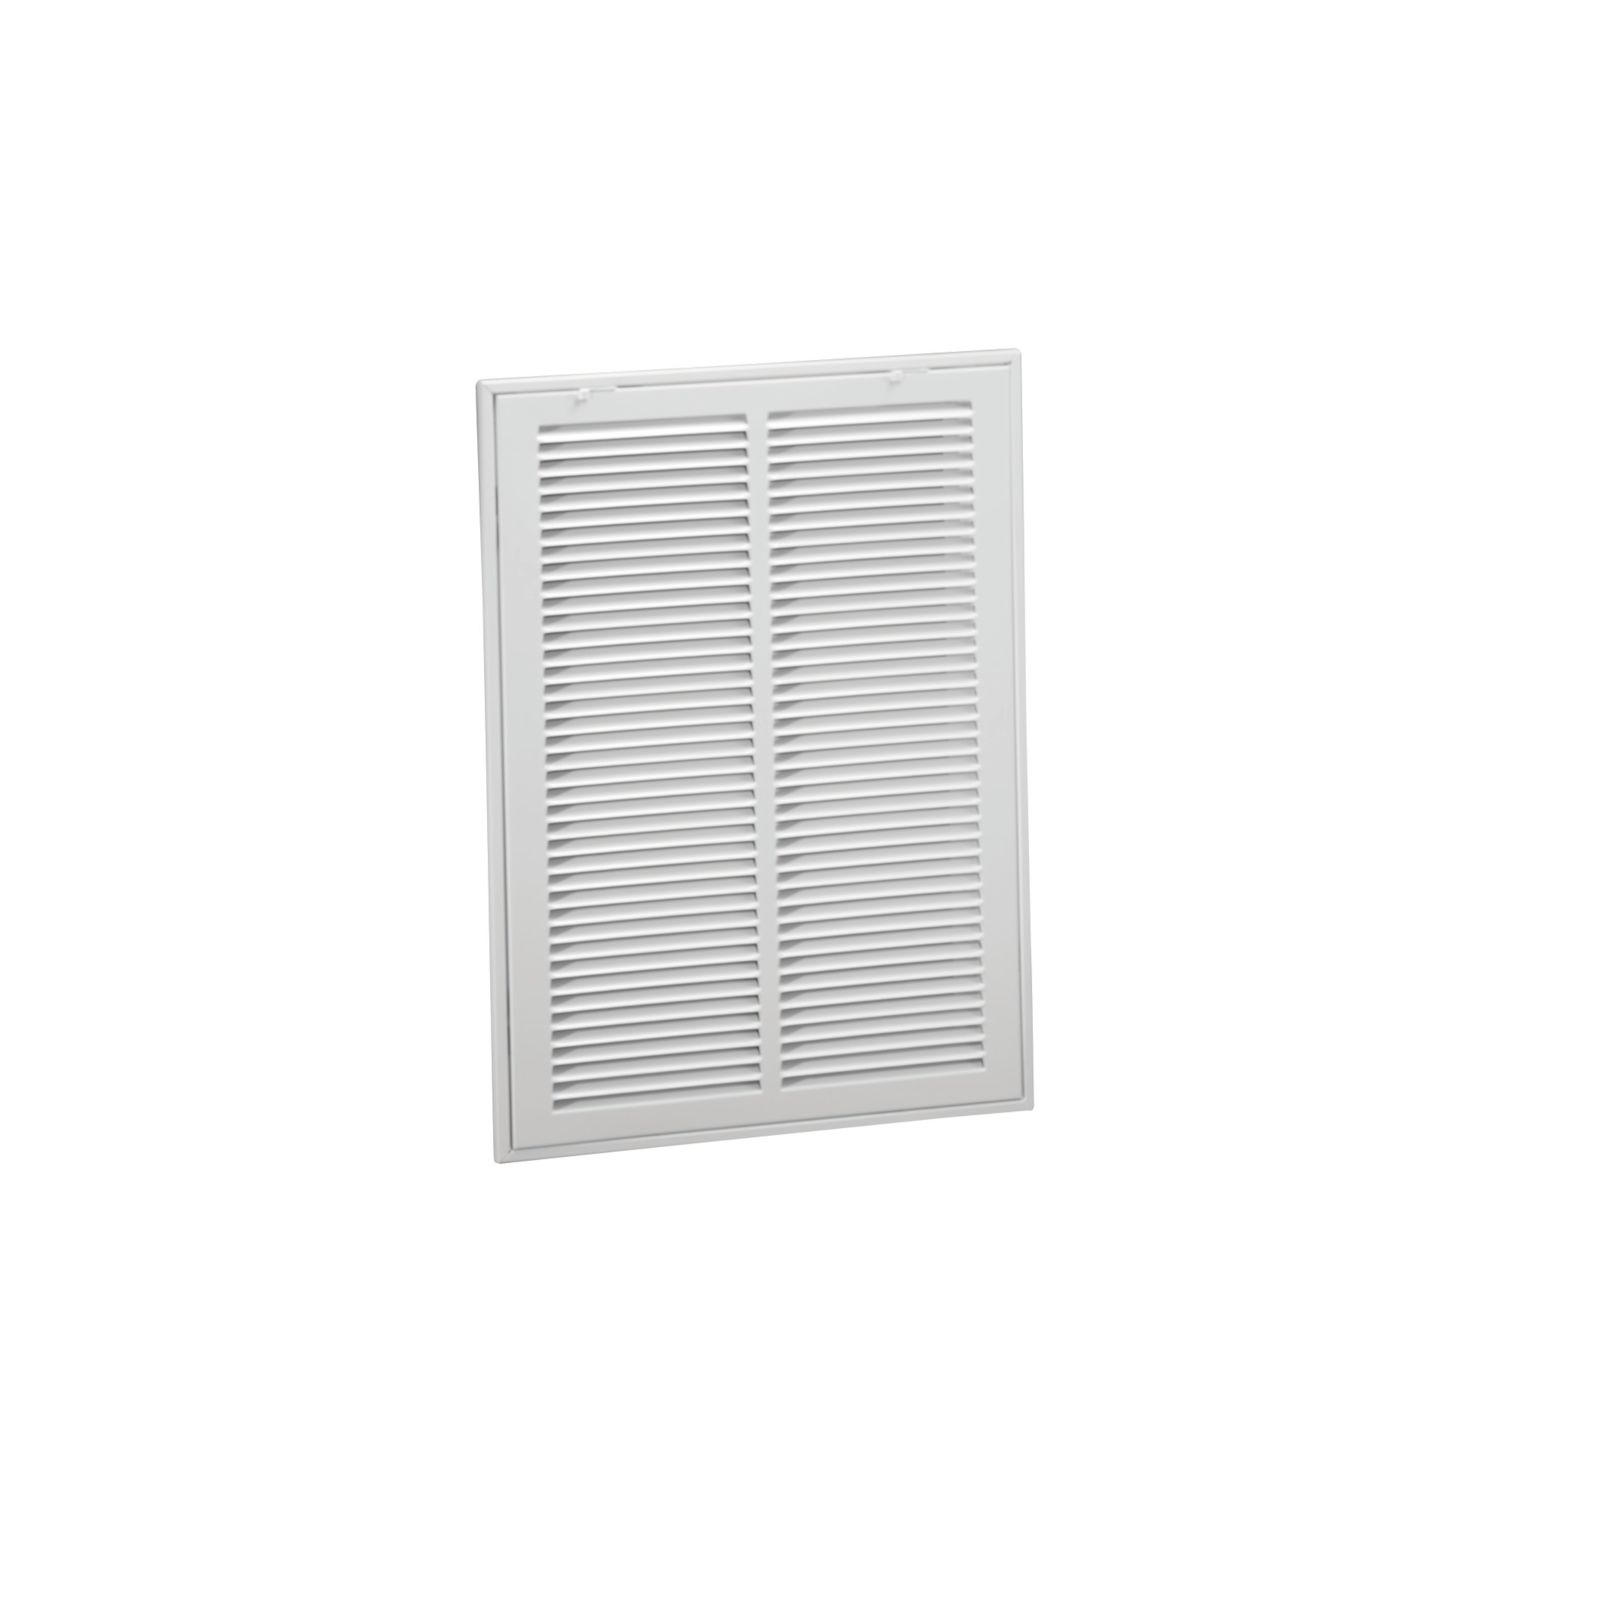 "Hart & Cooley 043528 - #673 Steel Return Air Filter Grille, White Finish, 25"" X 14"""